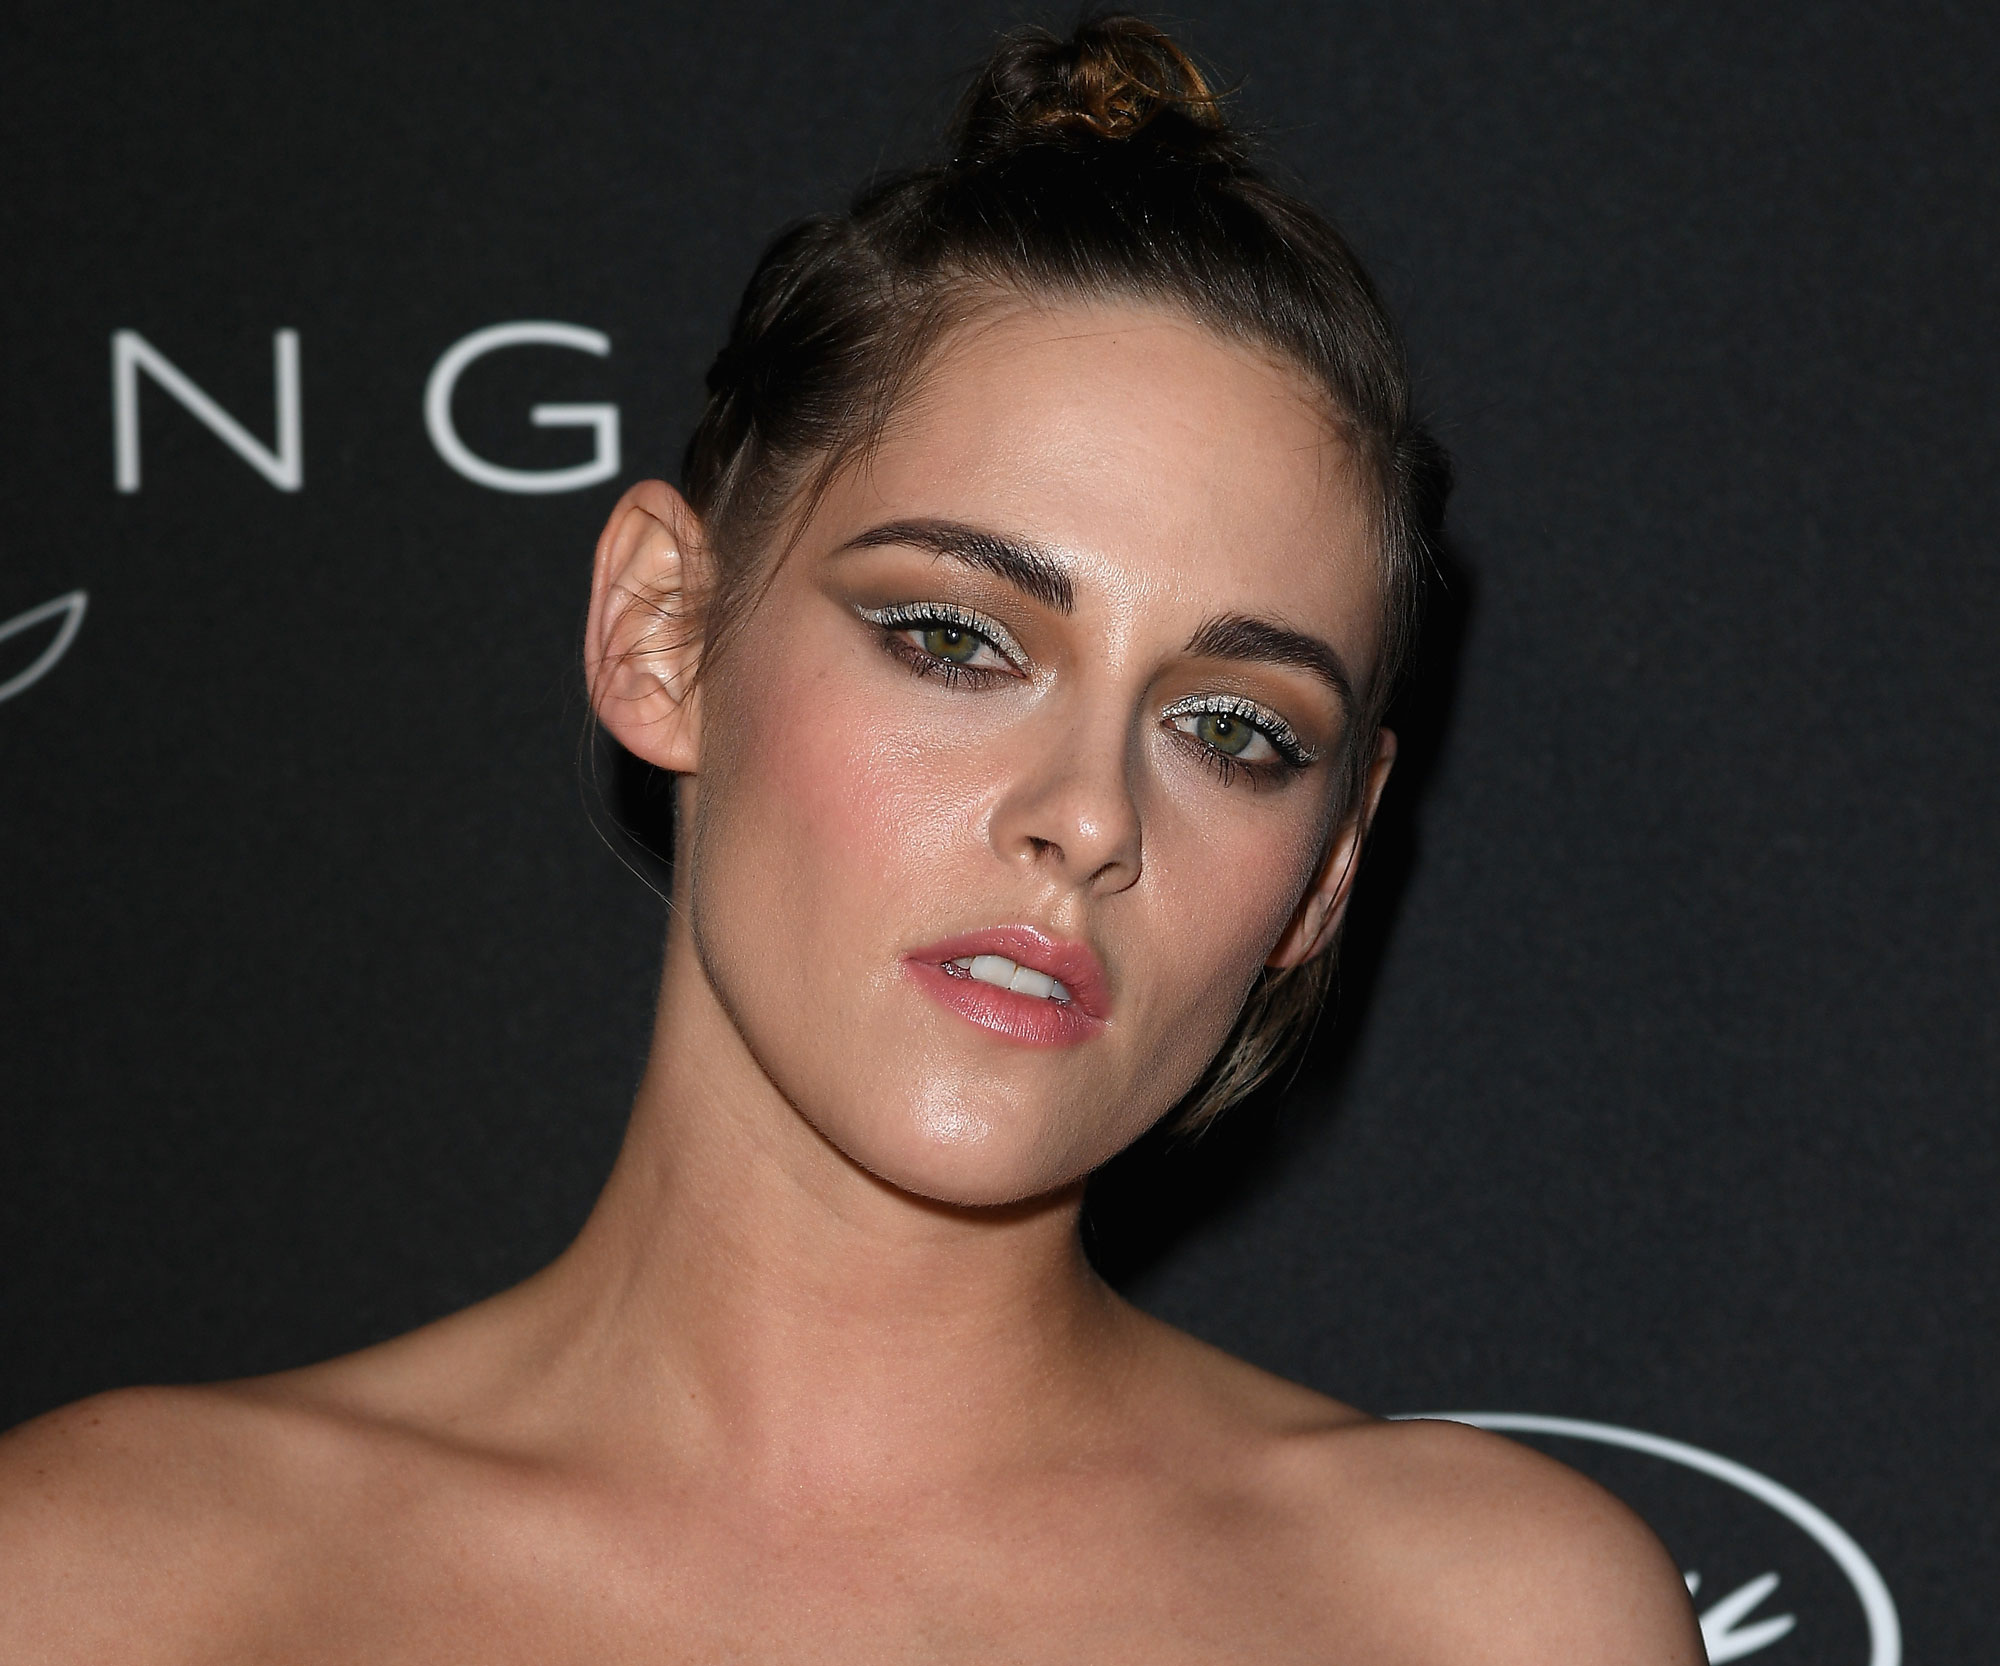 BeautyKristen Stewart Wore The Prettiest Pearl Eyeliner At Cannes The devil is in the